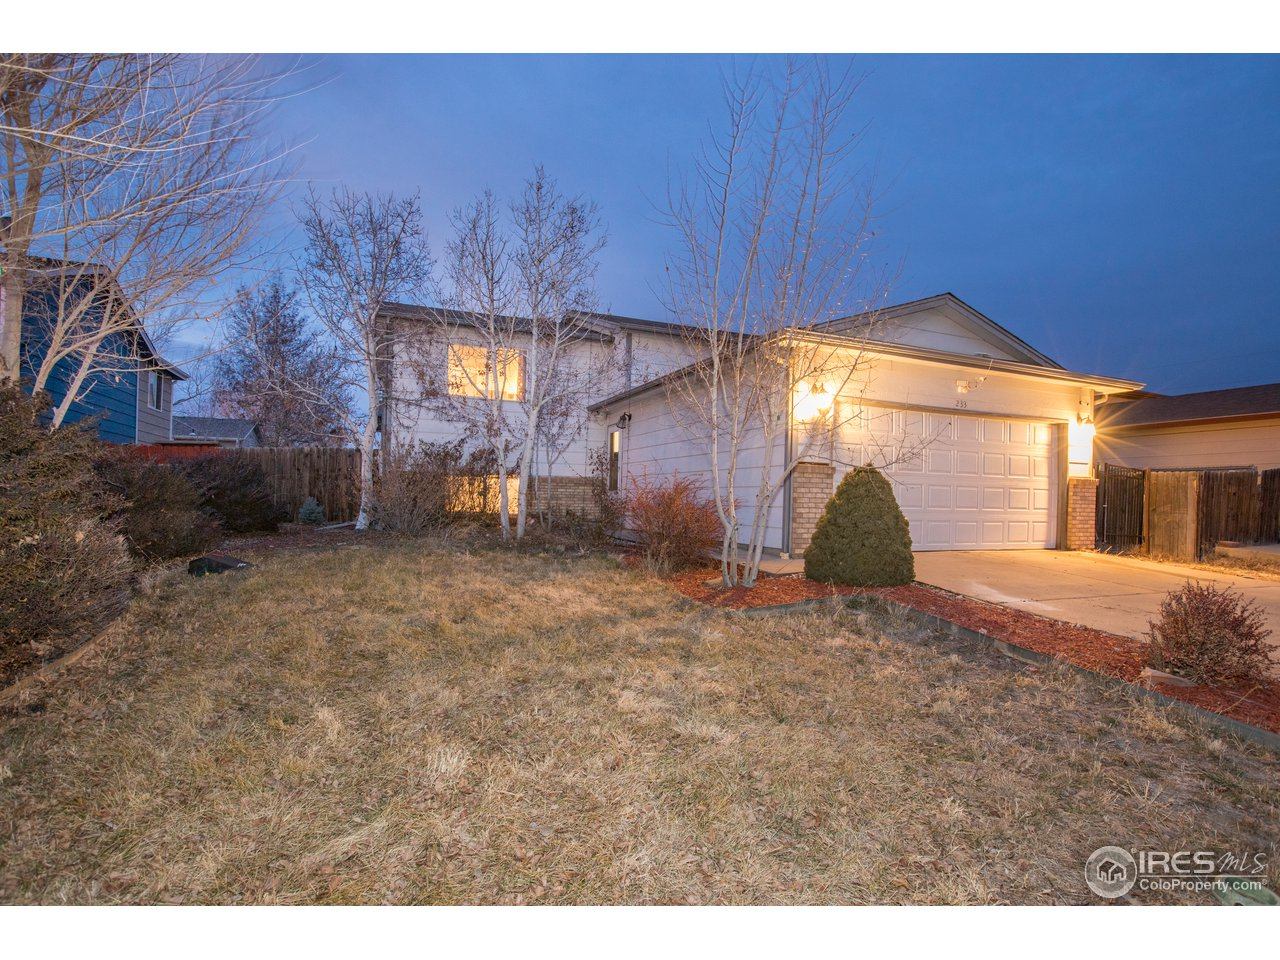 233 E 19th St Rd, Greeley CO 80631